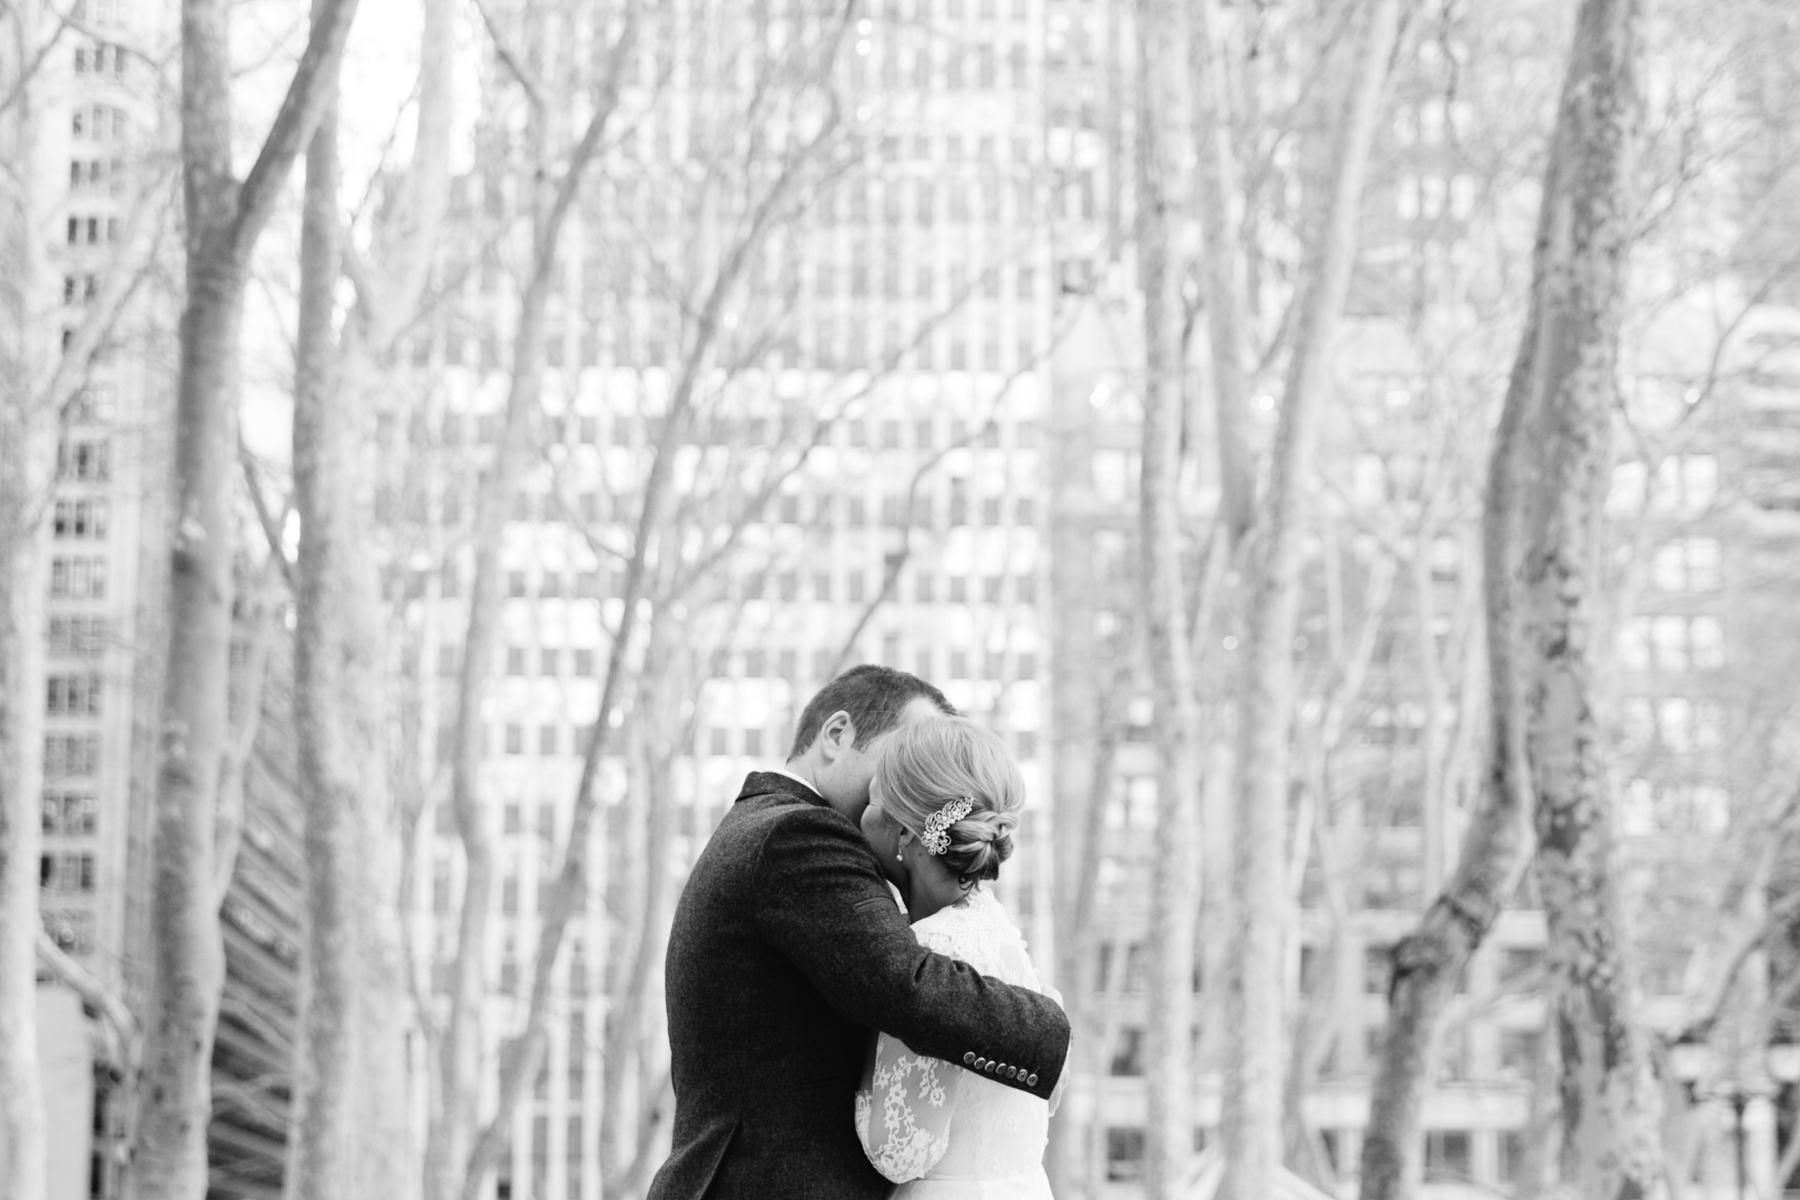 NYC-wedding-photos-by-Tanya-Isaeva-73.jpg